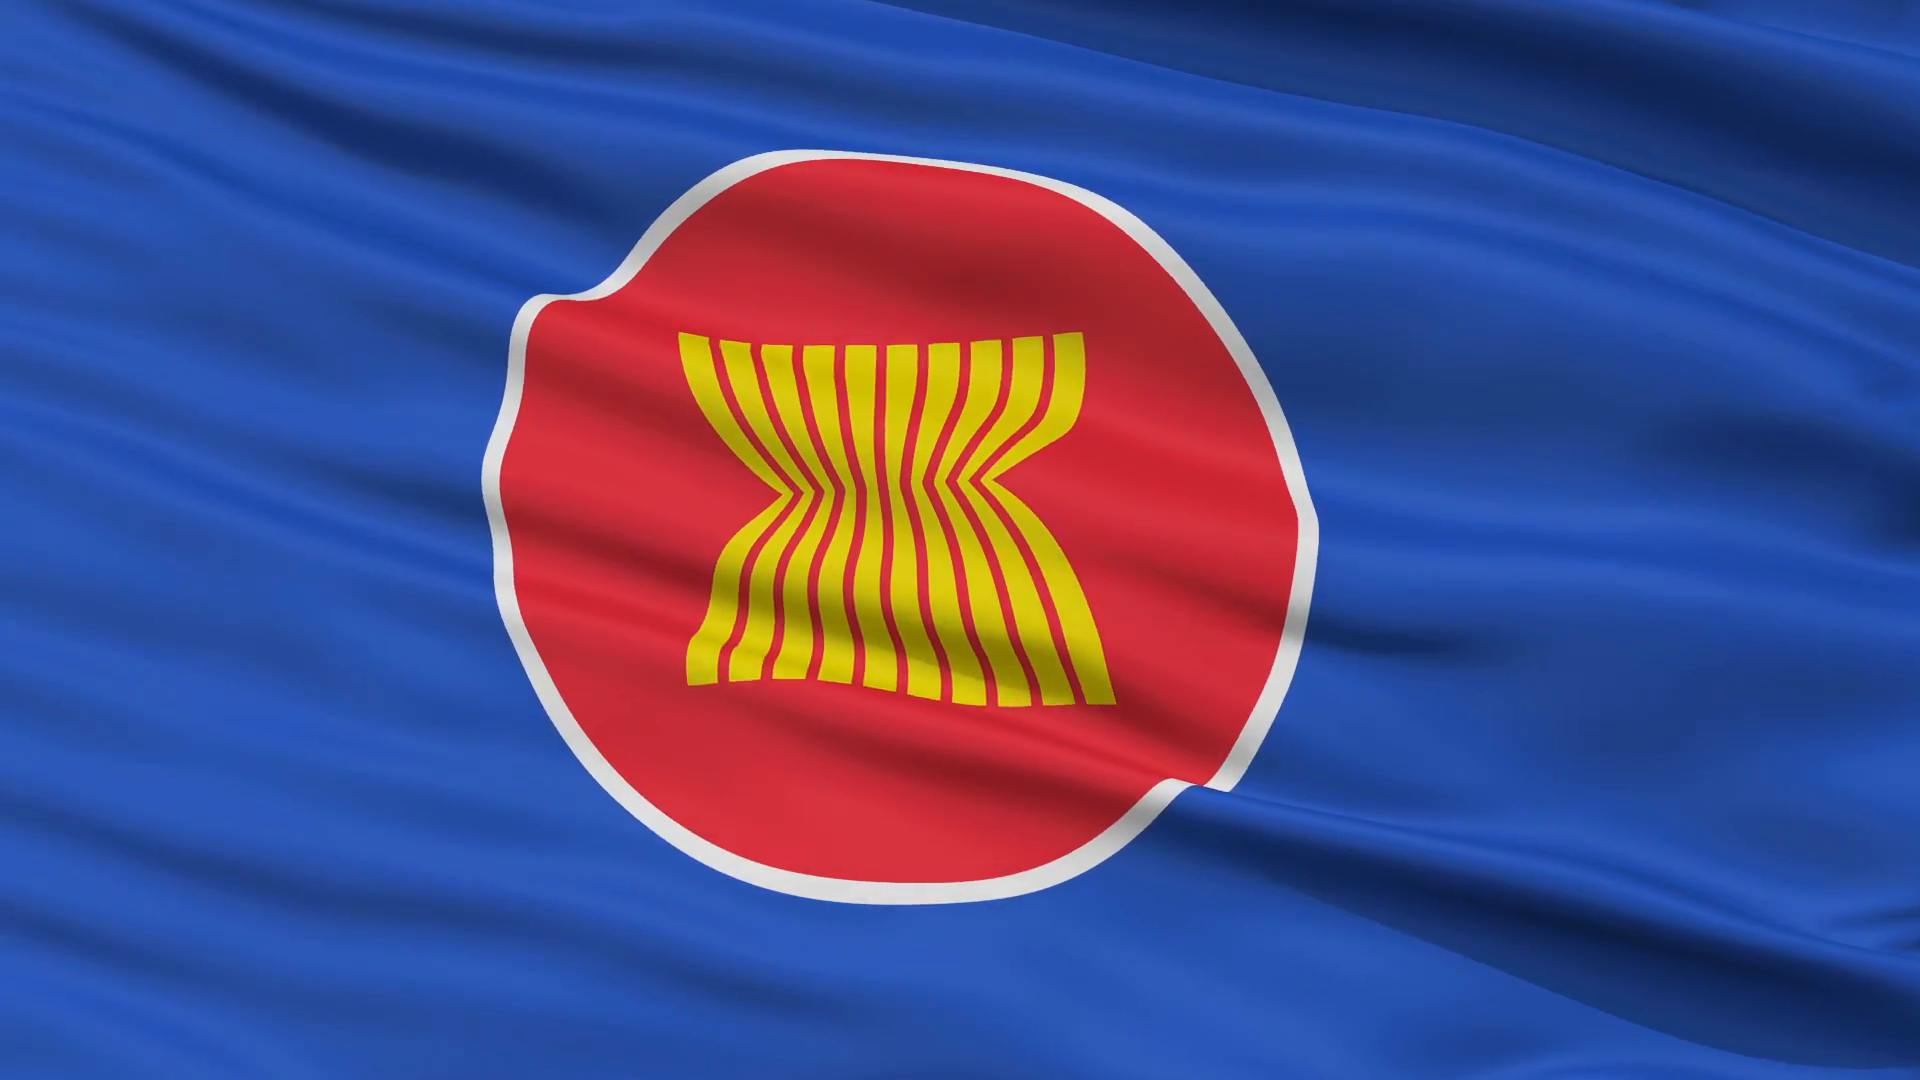 Asean Flag Close Up Realistic Animation Seamless Loop.